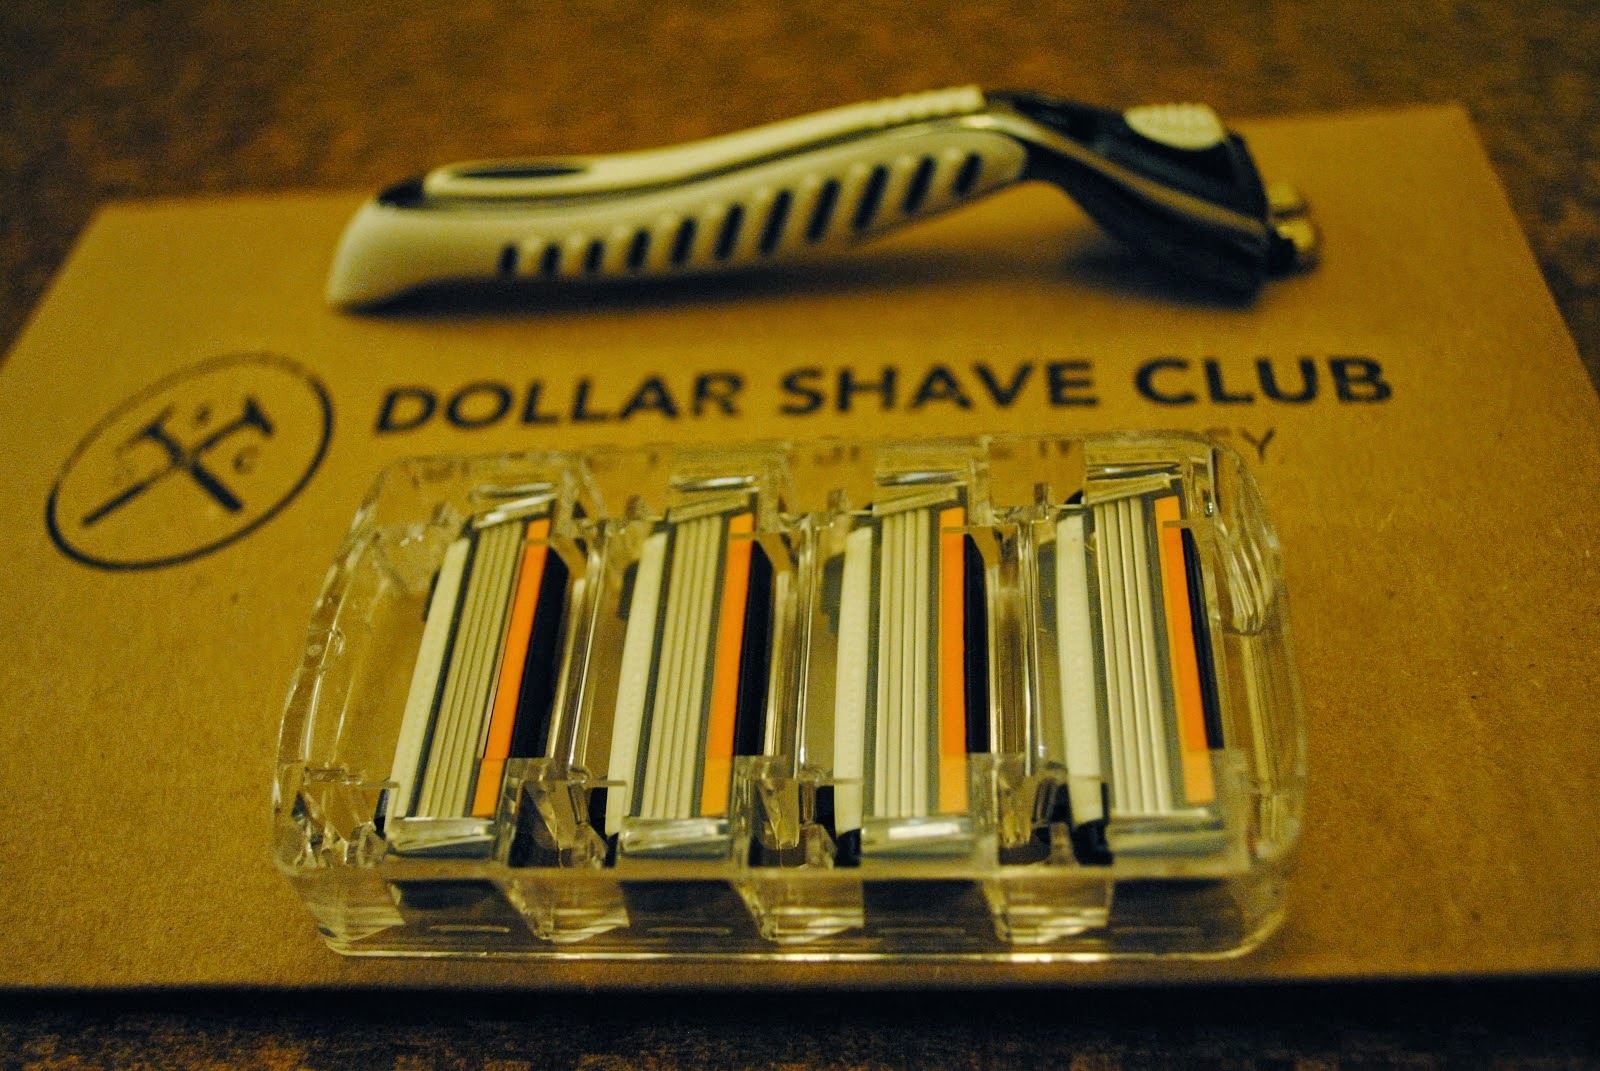 Dollar Shave Club, Razors